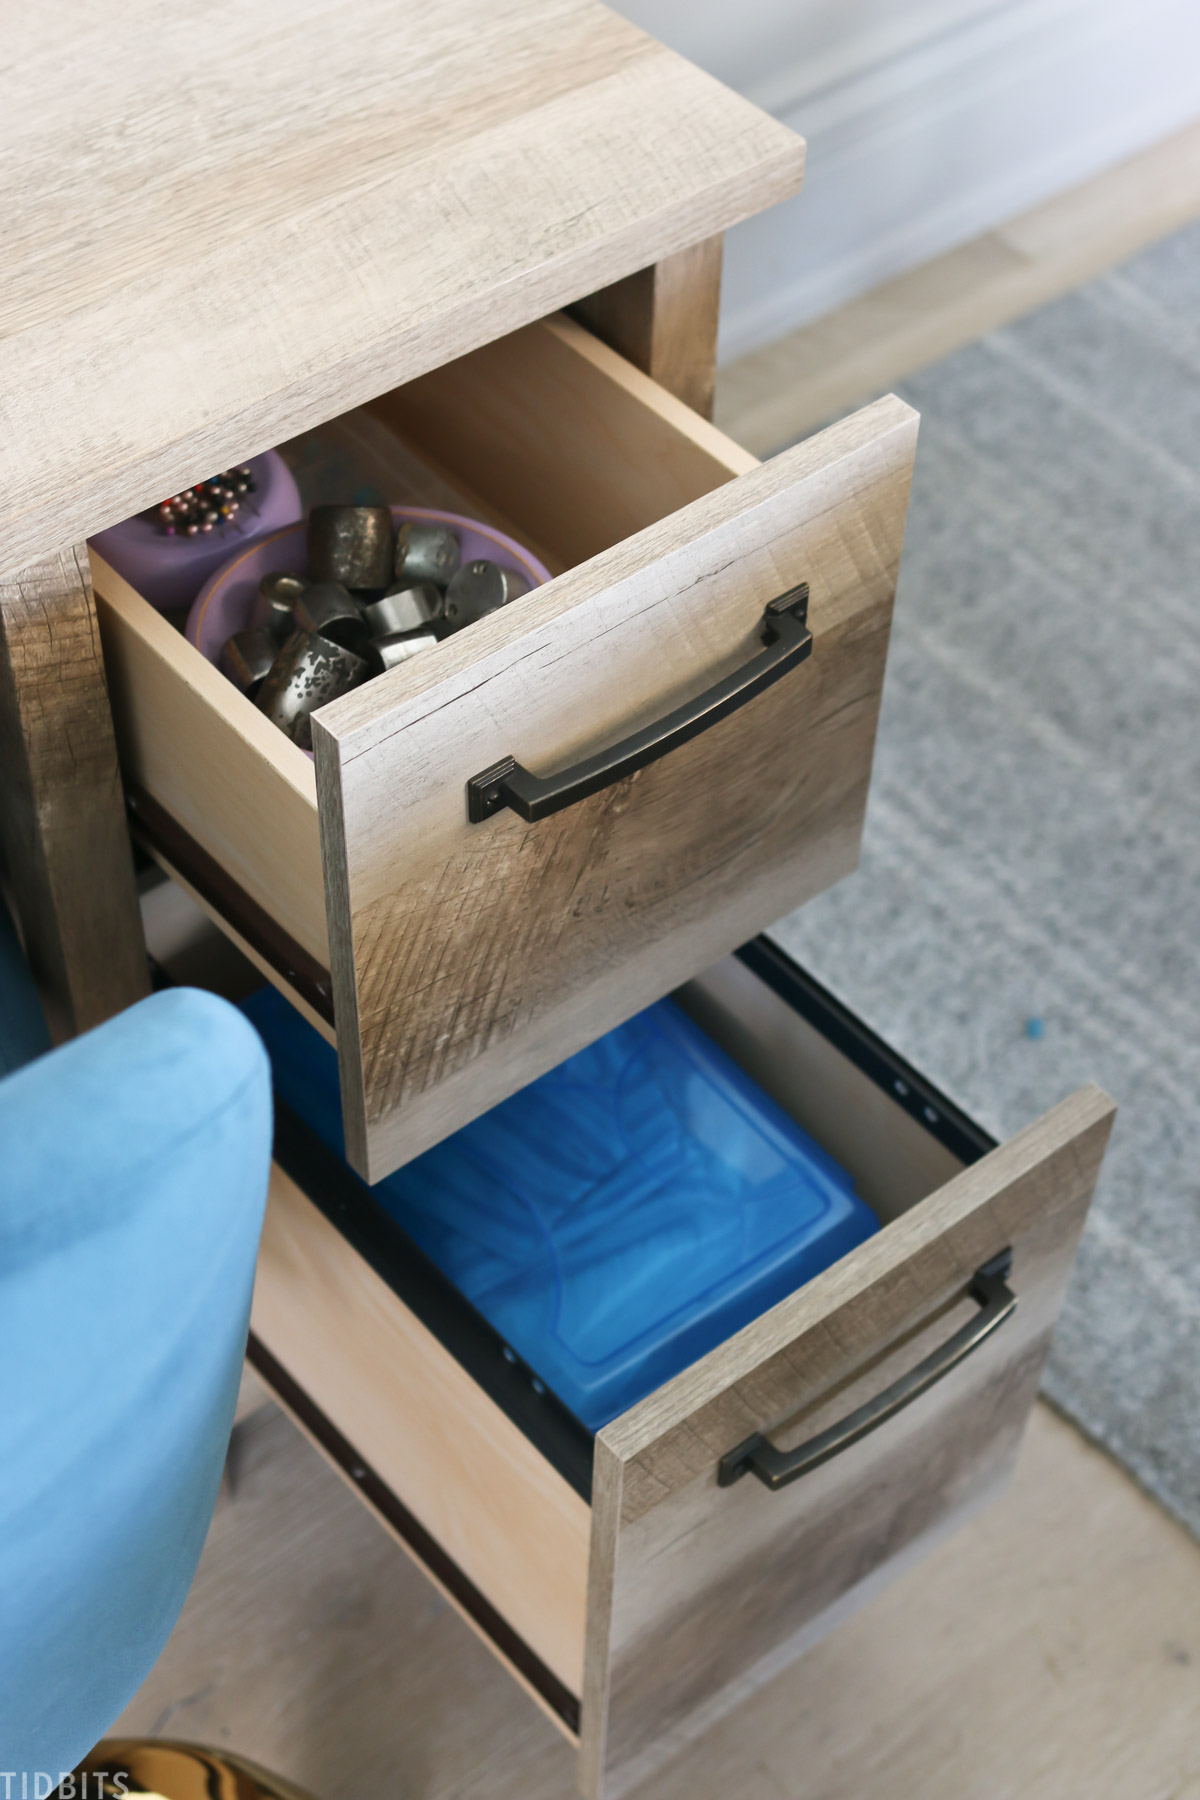 two desk drawers are opened to reveal the sewing supplies stored inside